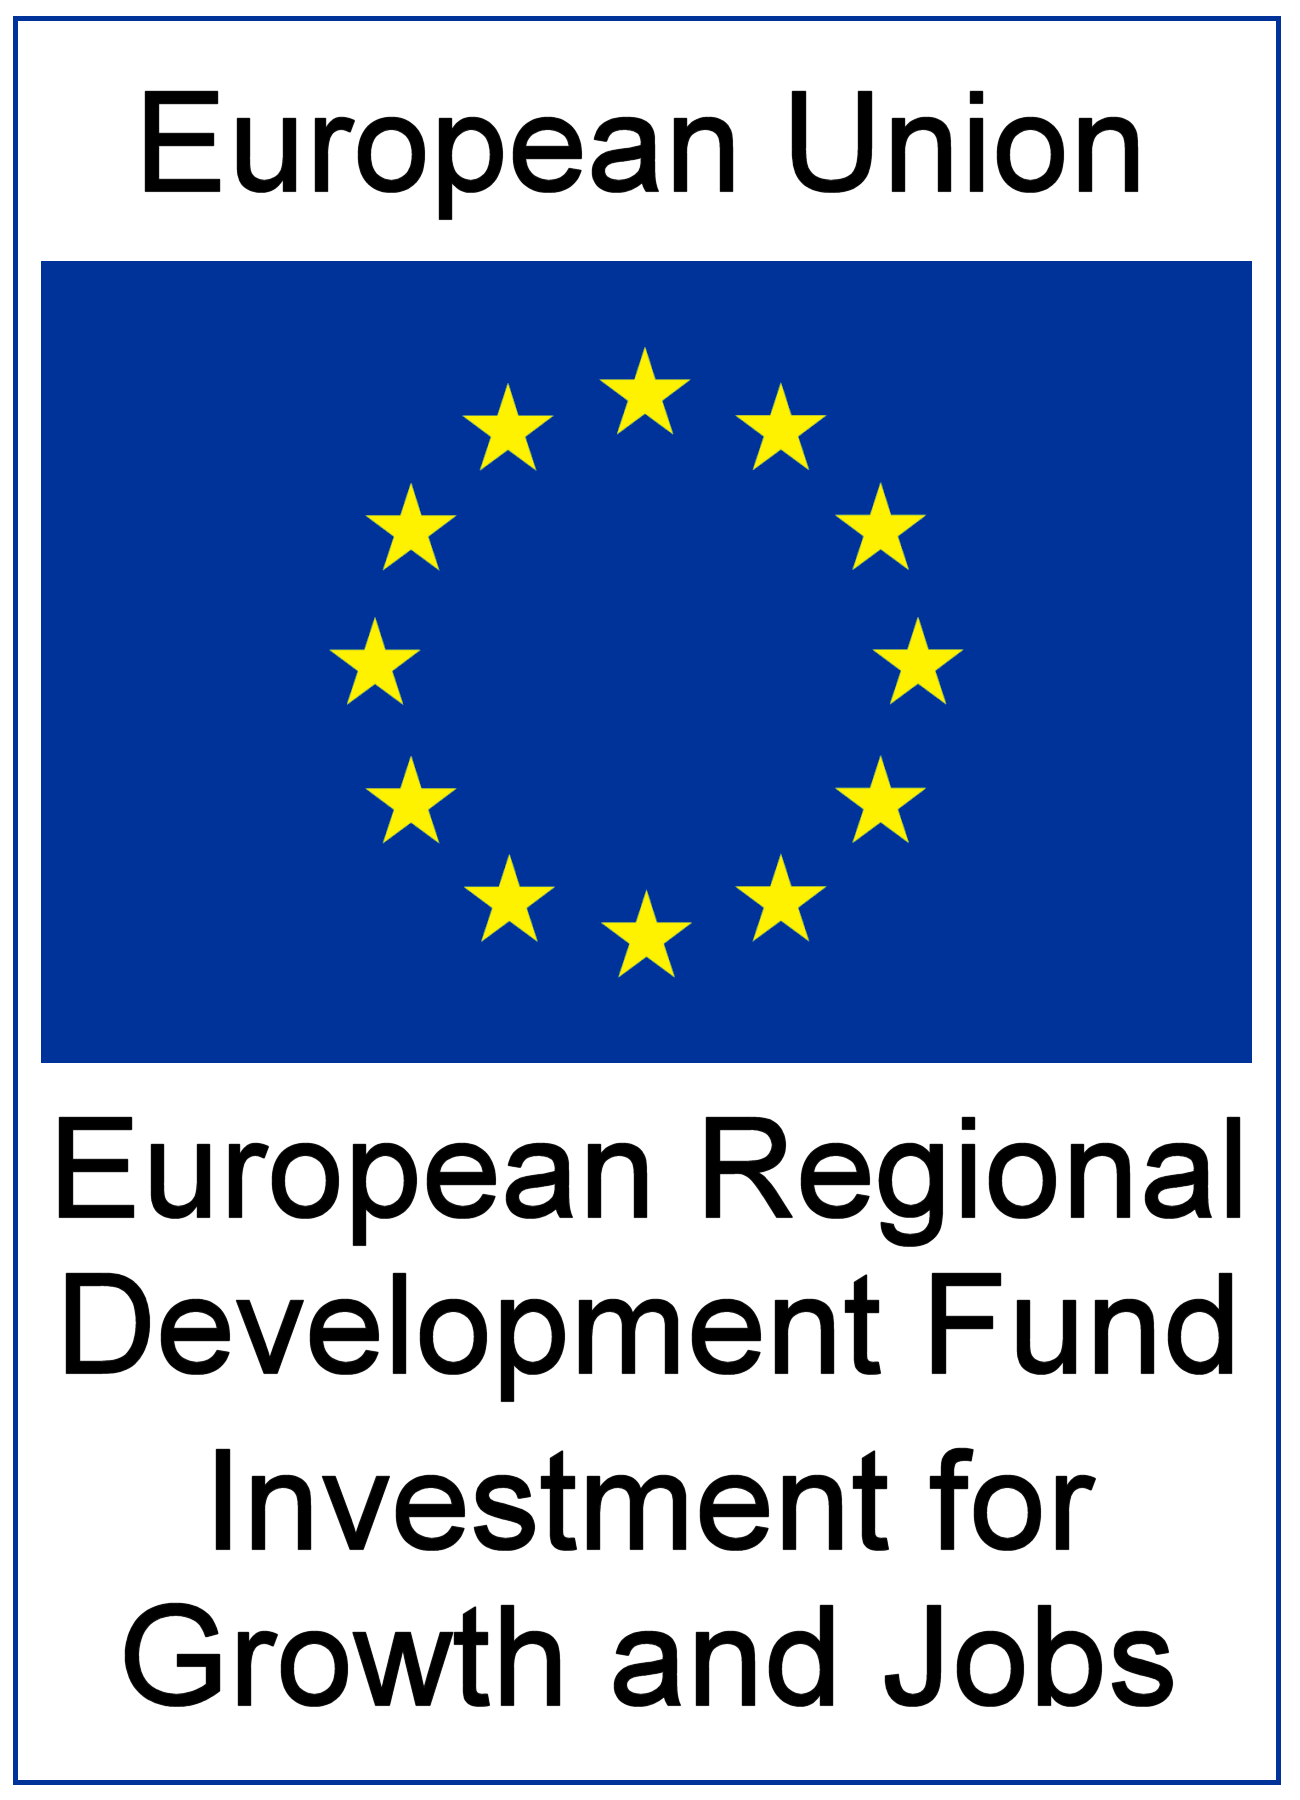 Investment for Growth and Jobs Northern Ireland